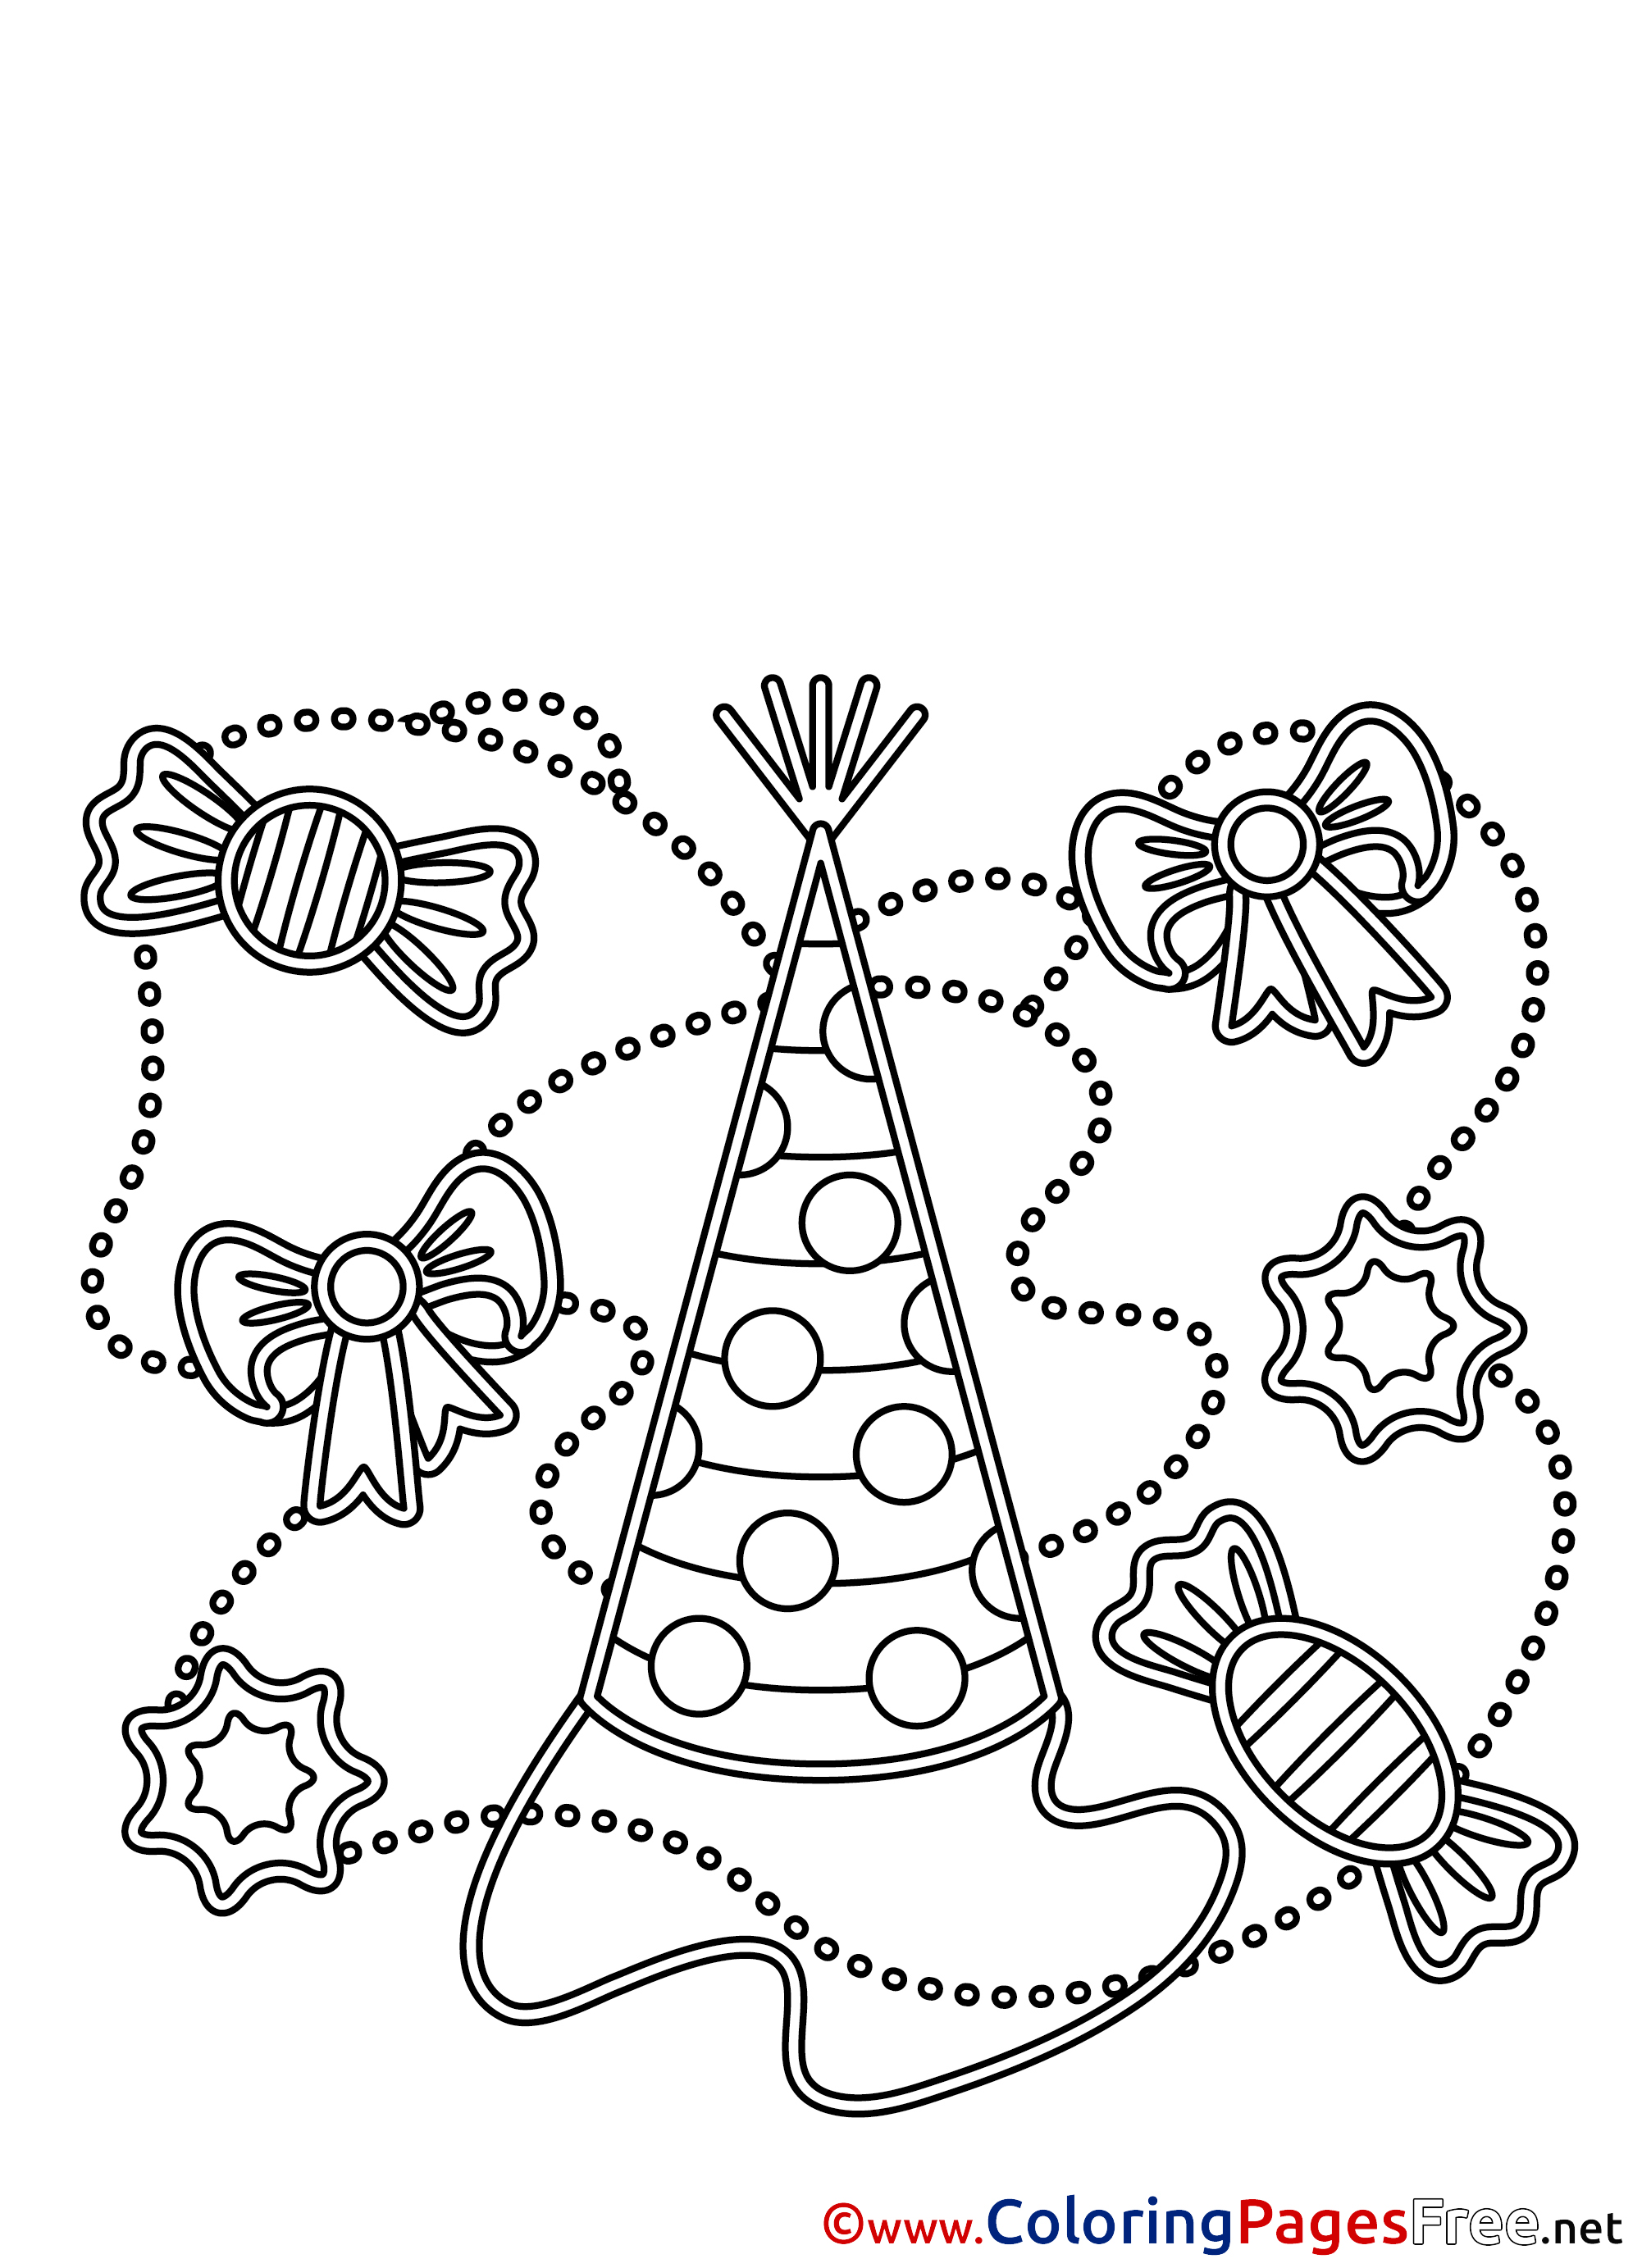 Birthday Party Hat Clip Art Sketch Coloring Page